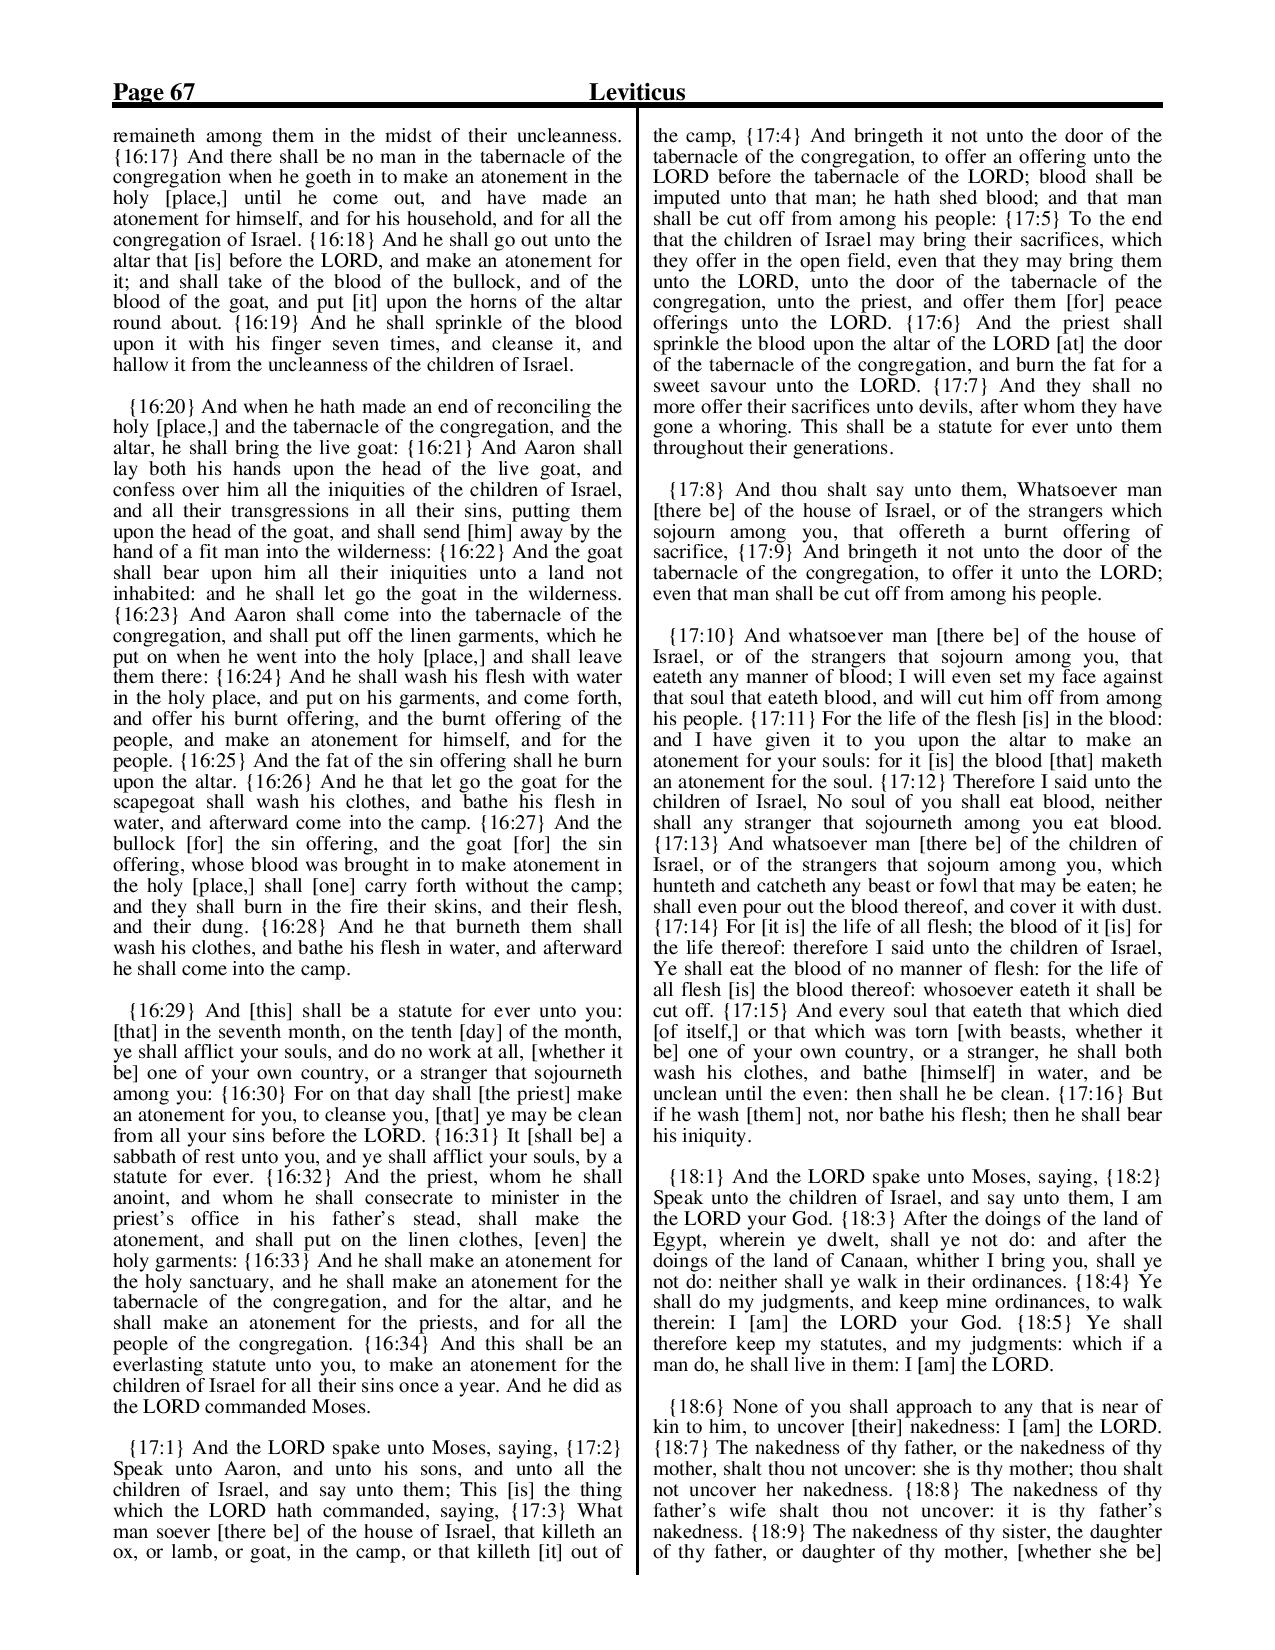 King-James-Bible-KJV-Bible-PDF-page-088